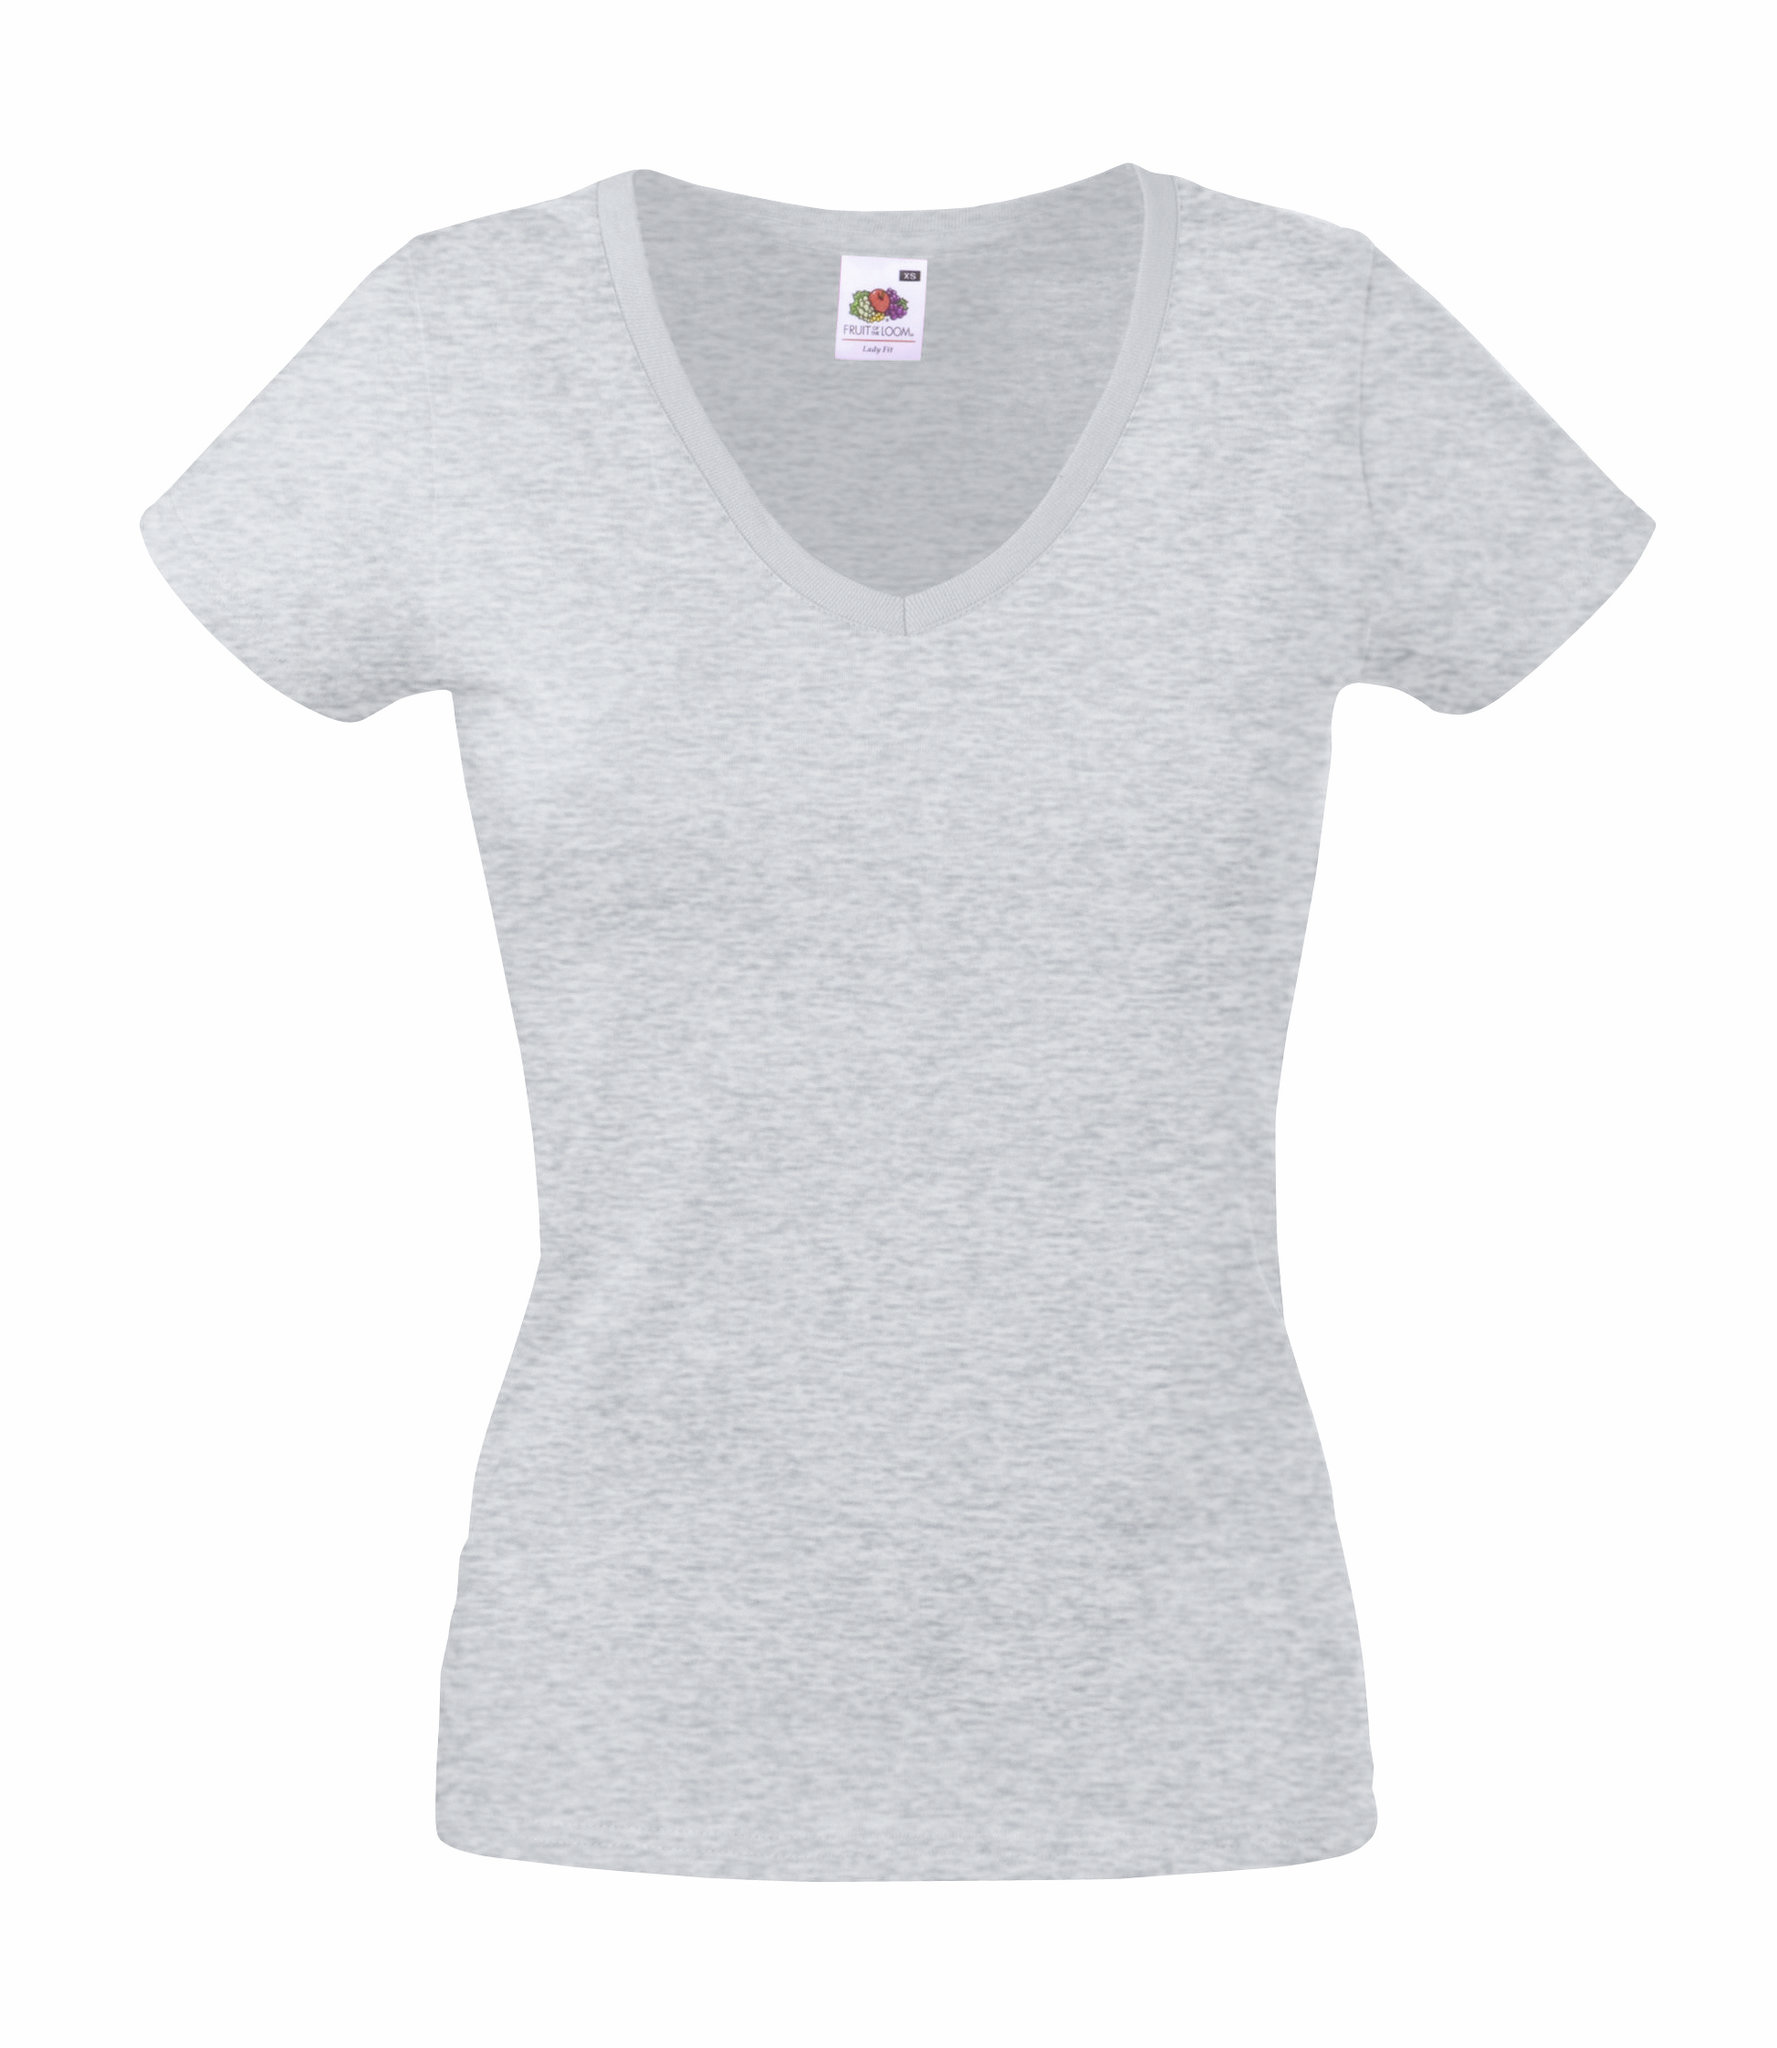 98ff54c80d1e8 Fruit of the Loom 61-398-0 - Camiseta Para Dama Valueweight con Cuello en V